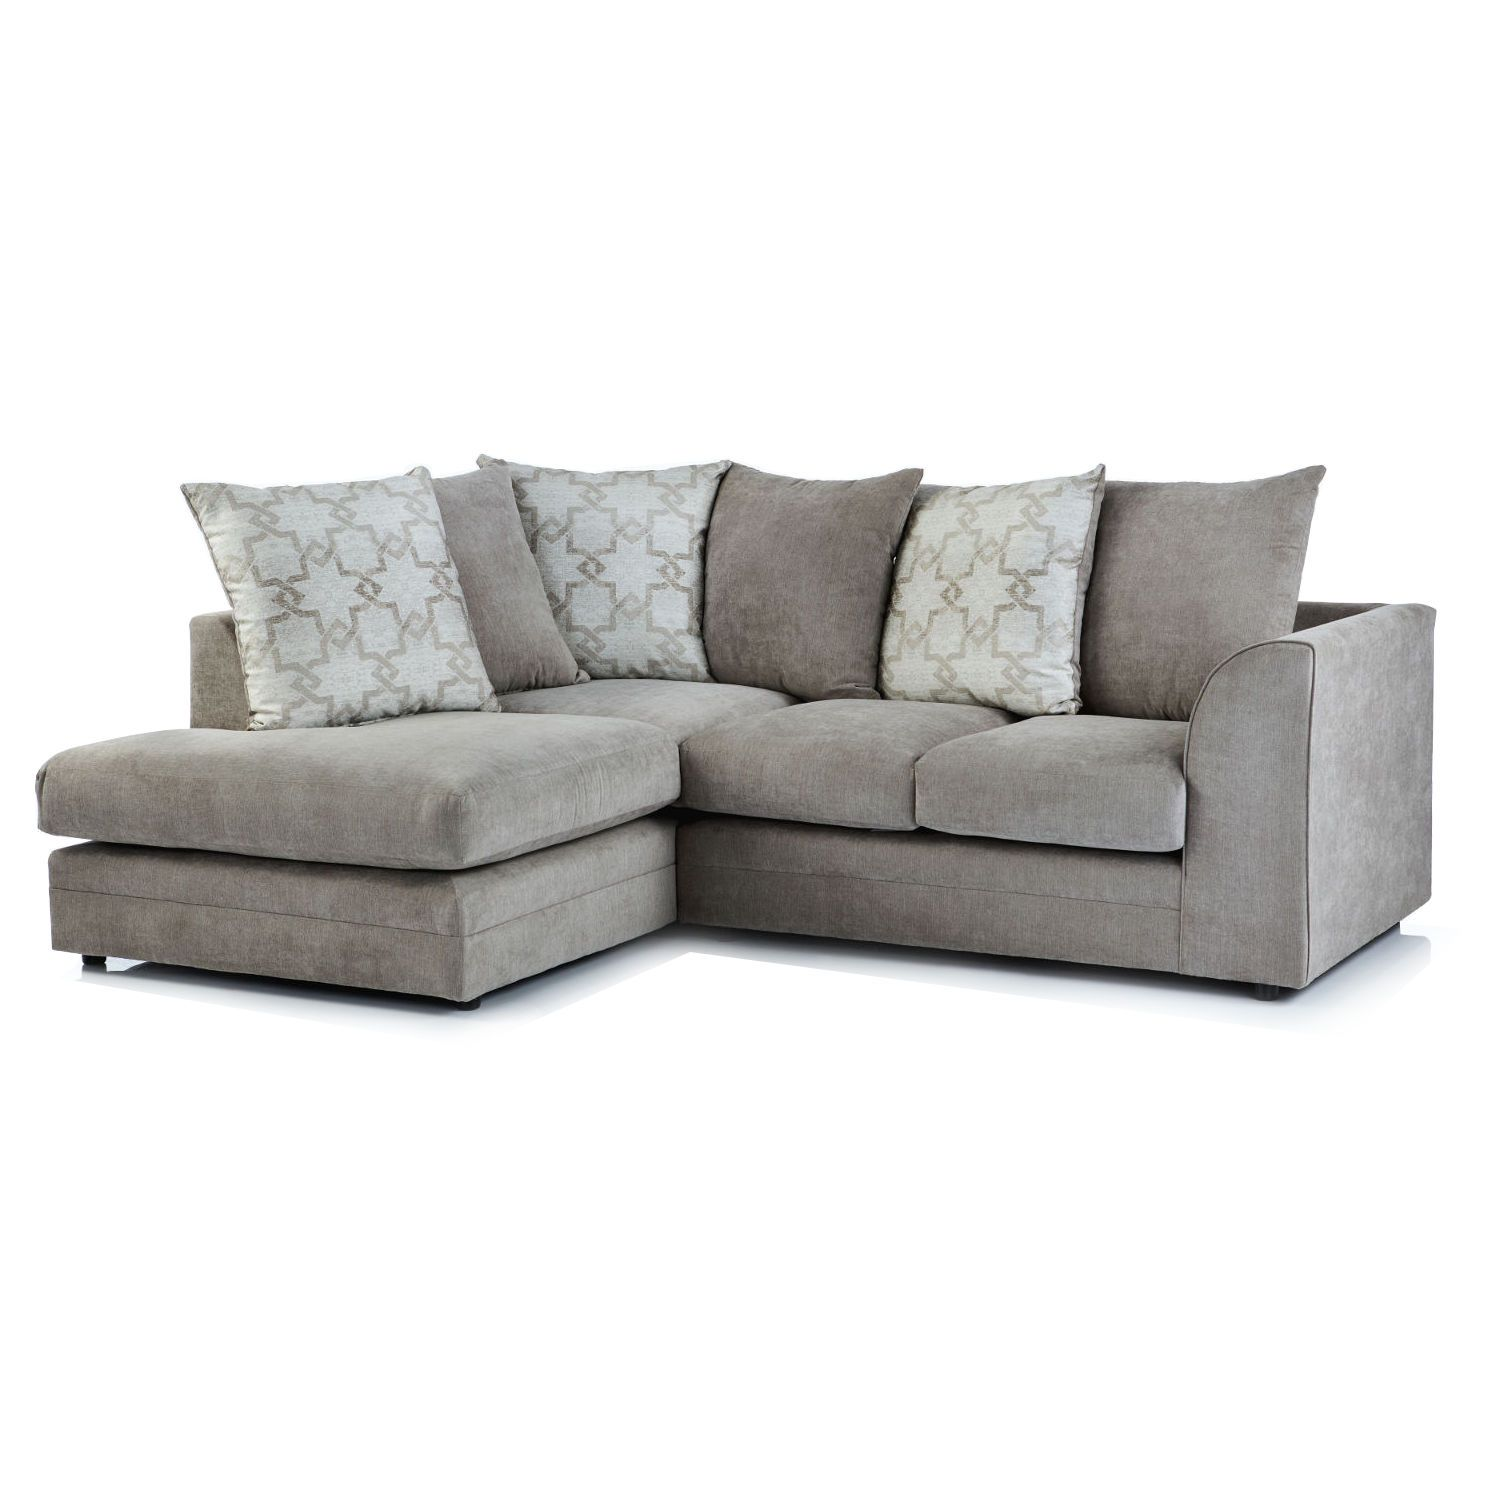 Small Corner Sofas Your Dream Pieces To Save Space With Elegance And Comfort Small Corner Sofa Corner Sofa Modular Corner Sofa